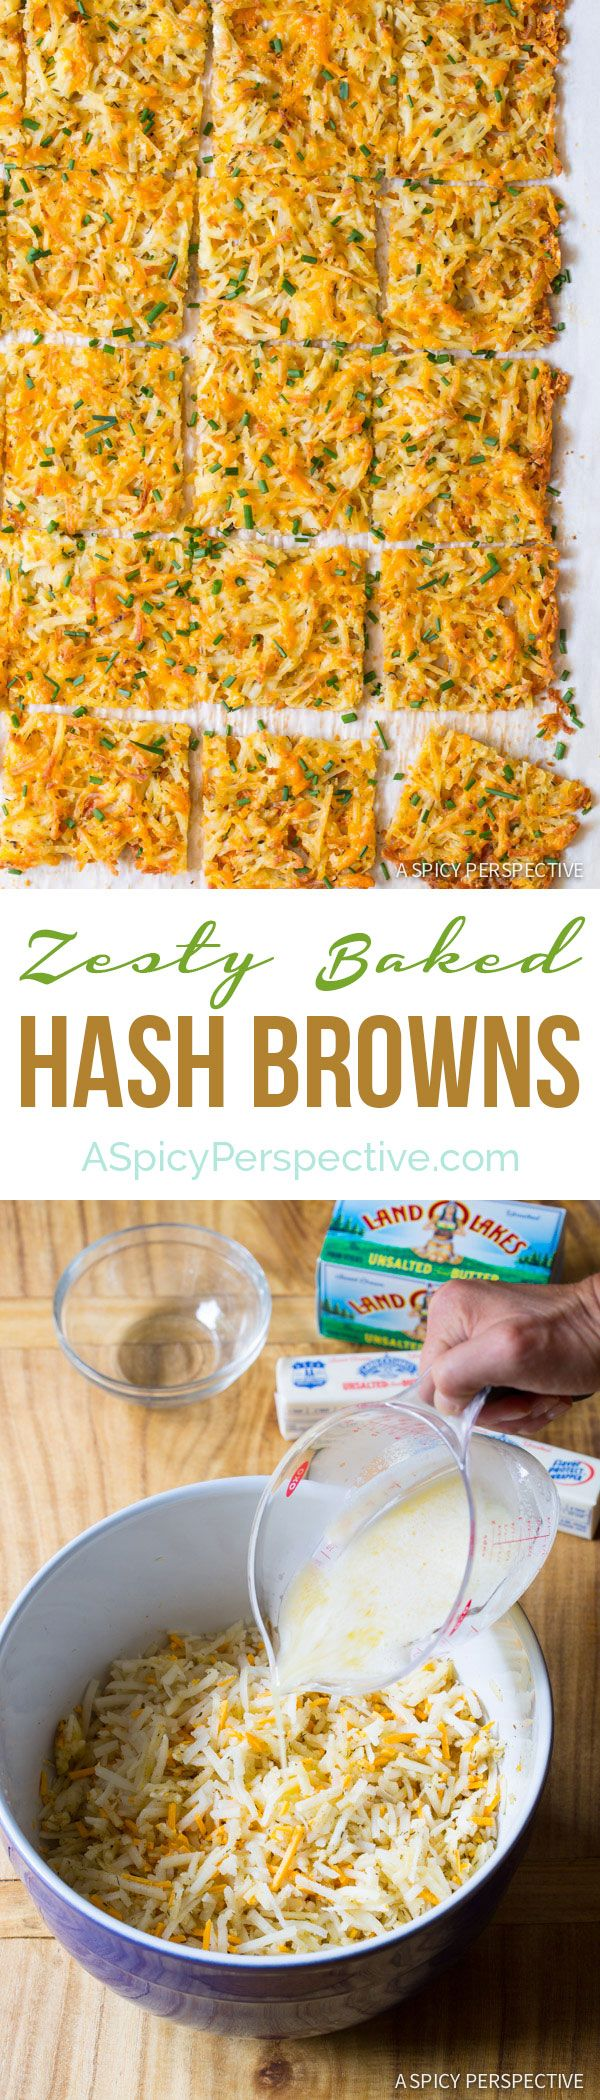 ... Baked Hash Brown Recipe on ASpicyPerspective.com #breakfast #potatoes